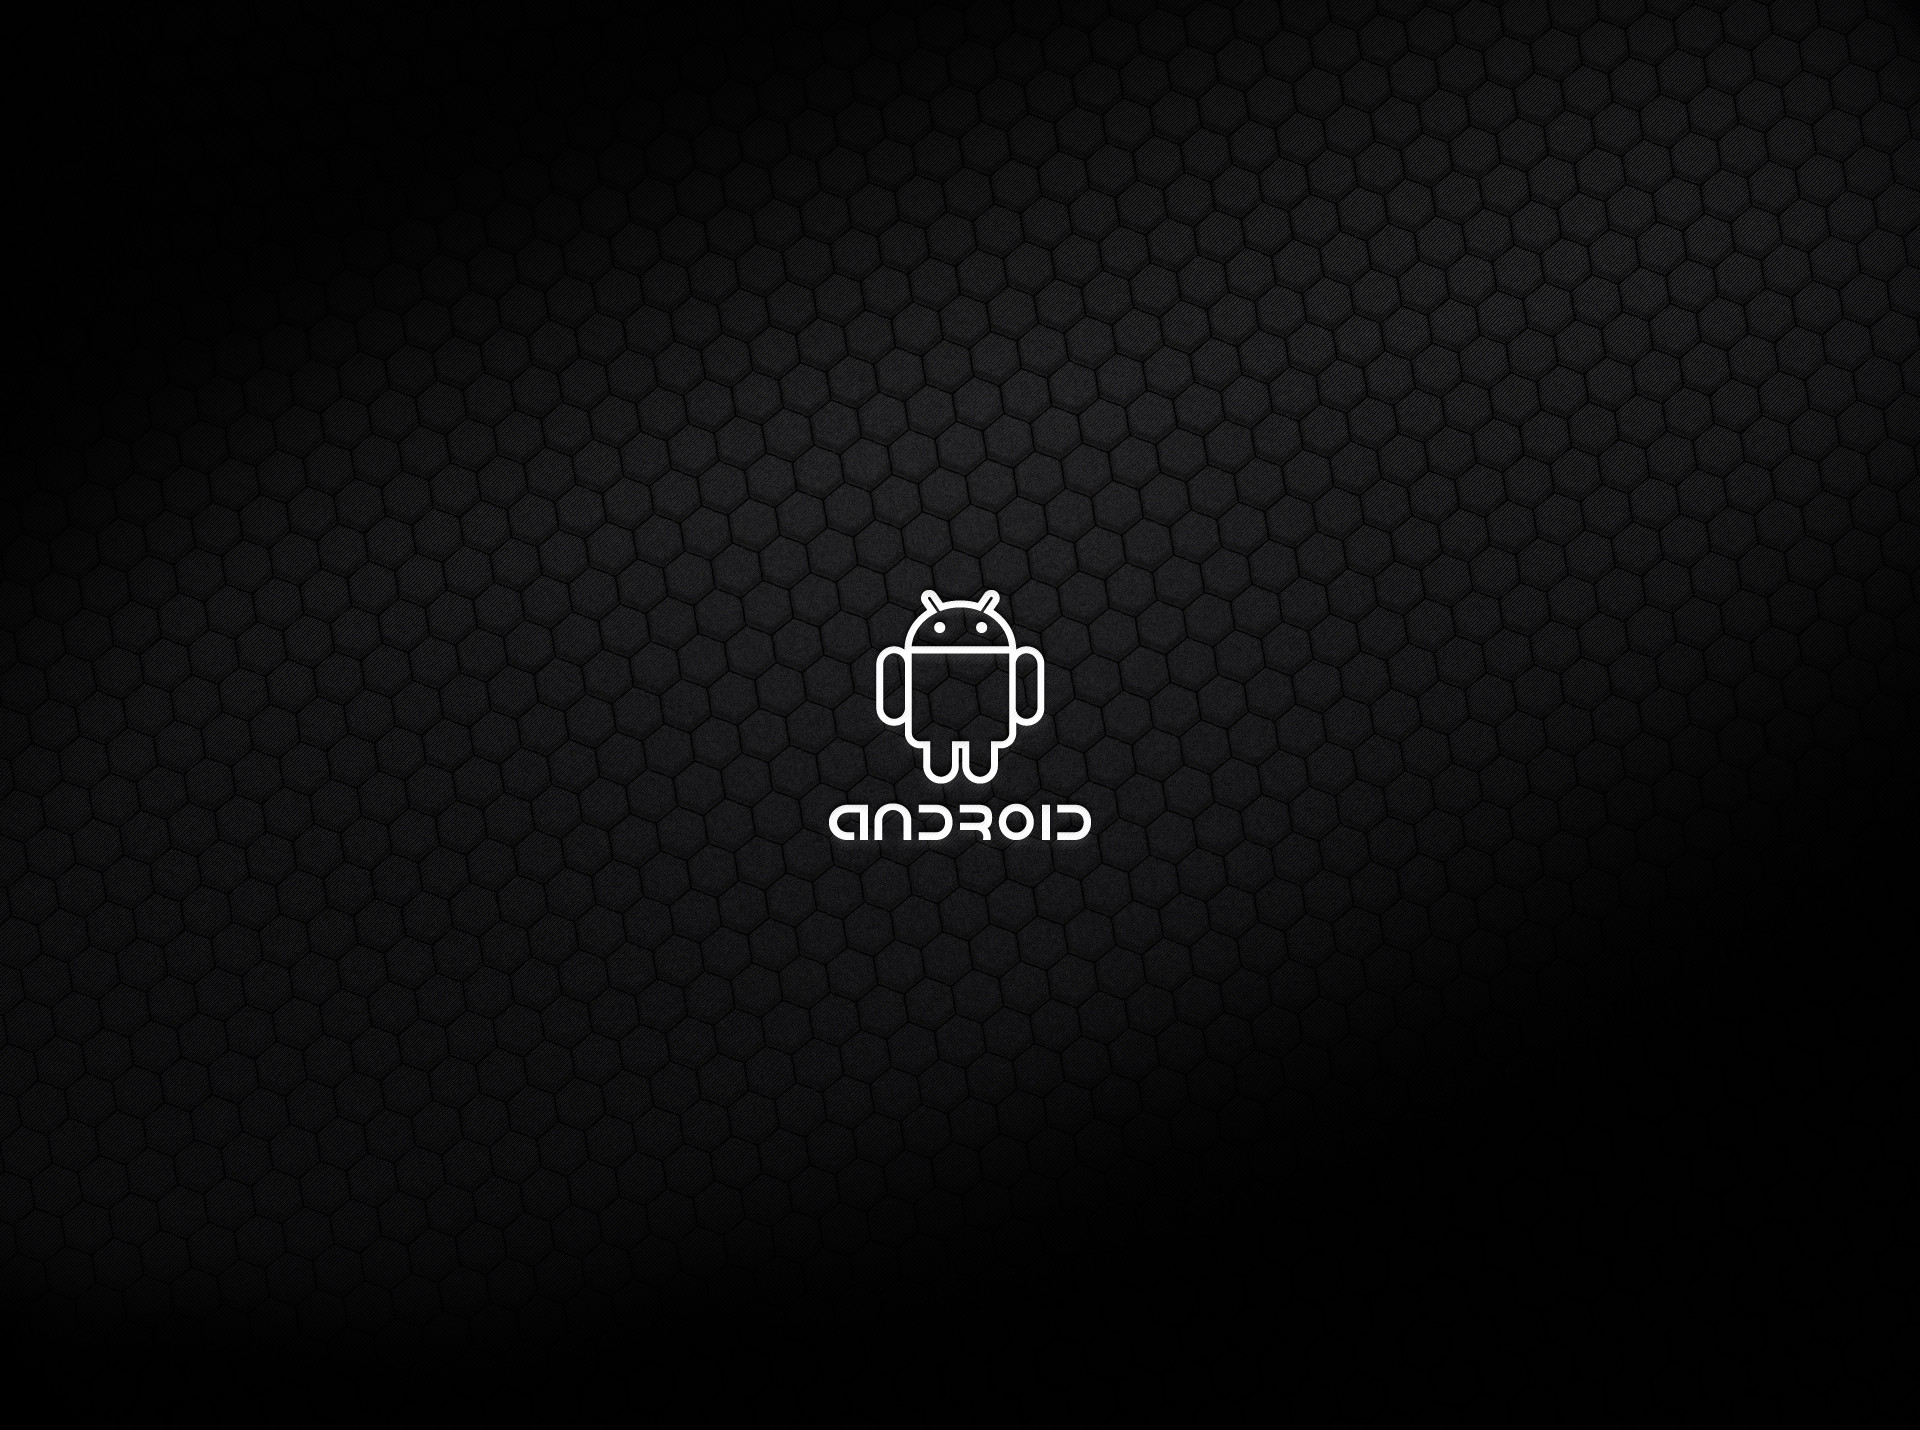 1920x1430 android logo wallpapers hd images download download desktop wallpapers background images mac desktop wallpapers free hd tablet smart phone